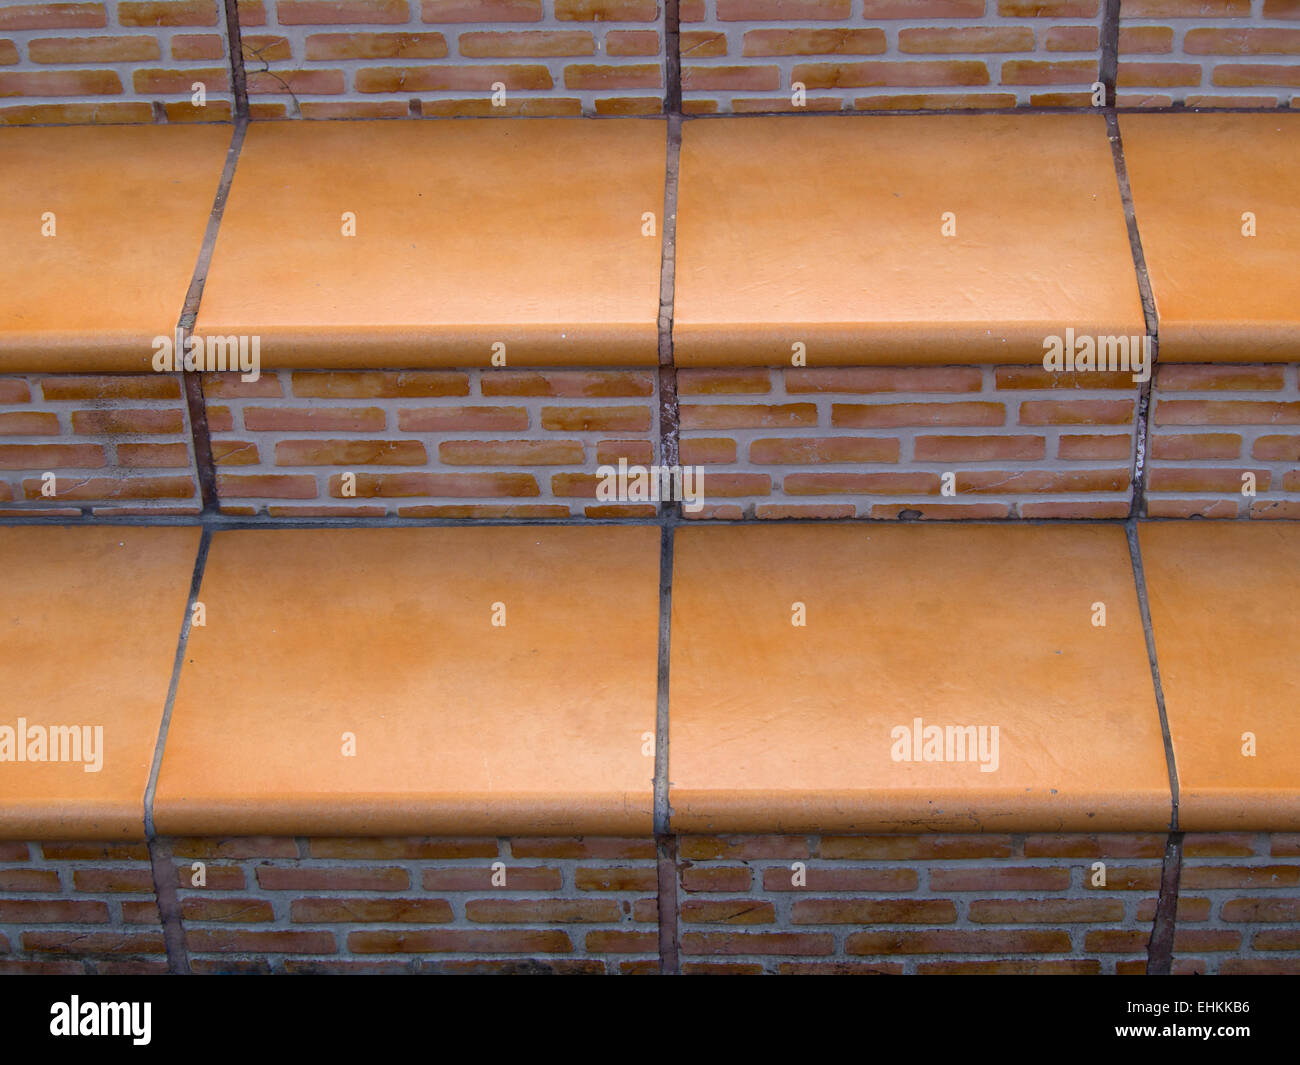 Orange tiles and red bricks, close up of stairs typical for outdoor pedestrian areas in the Canary Islands - Stock Image